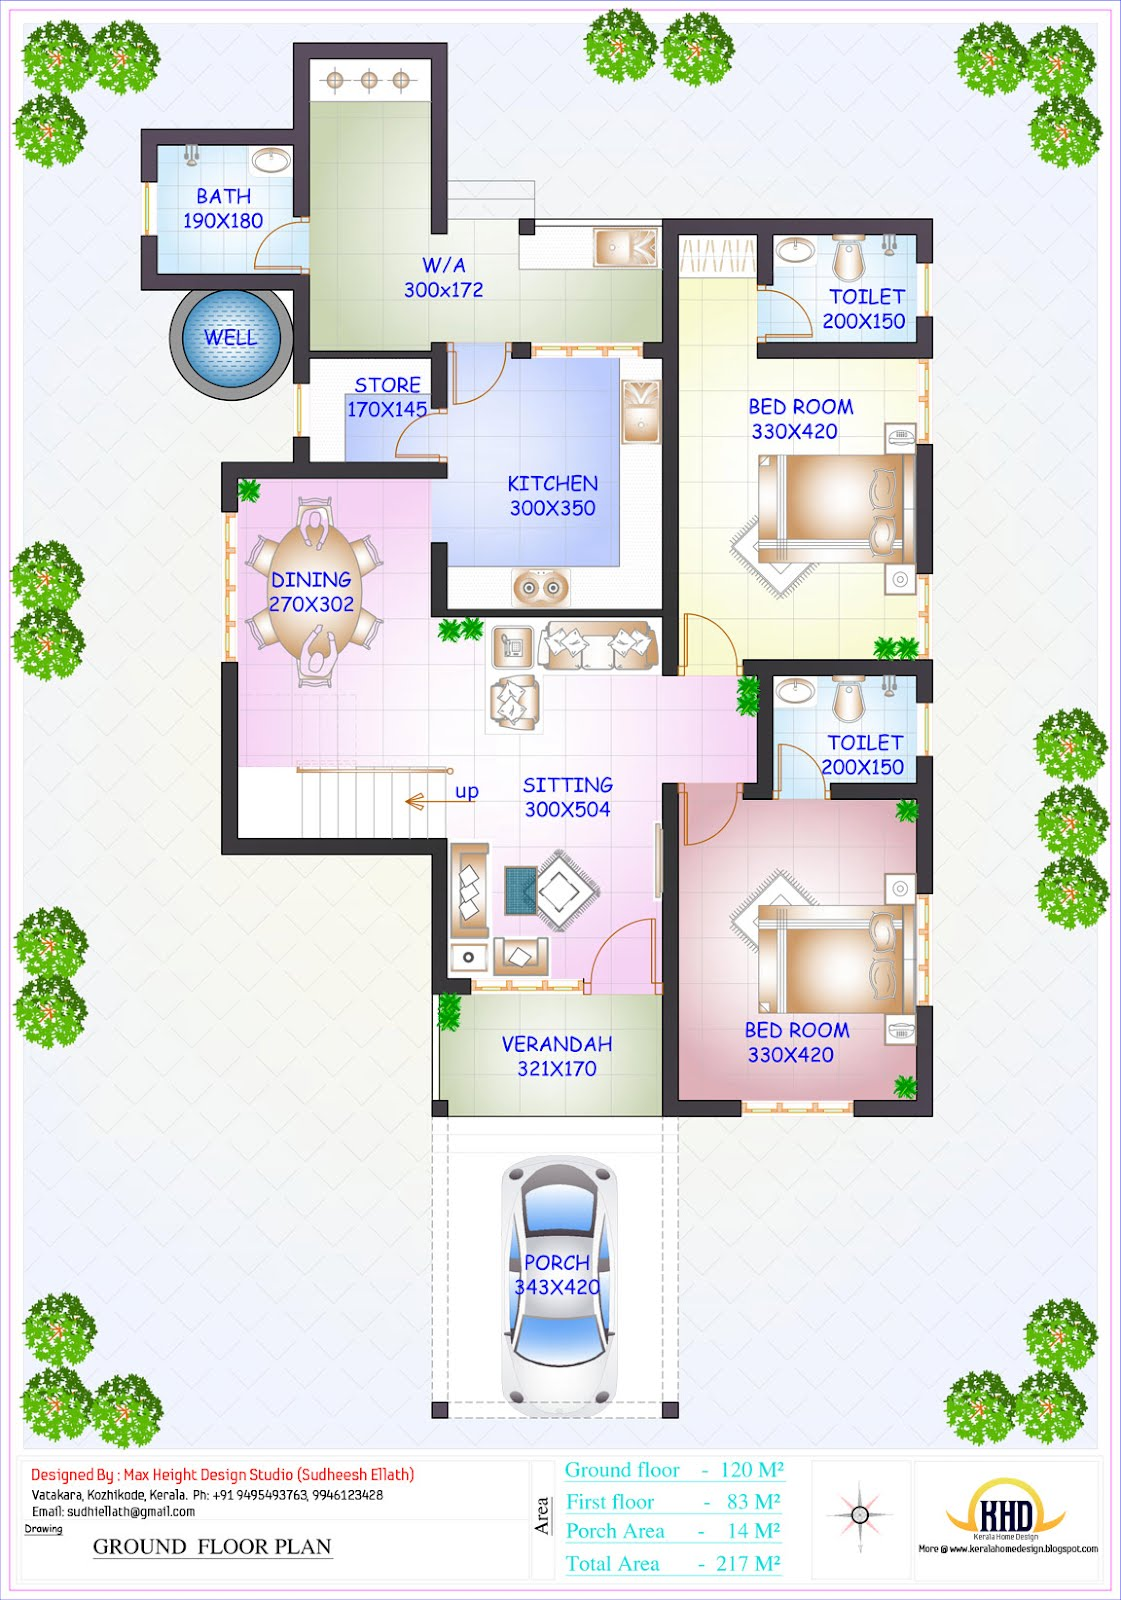 Floor plan and elevation of 2336 sq.feet, 4 bedroom house | Indian